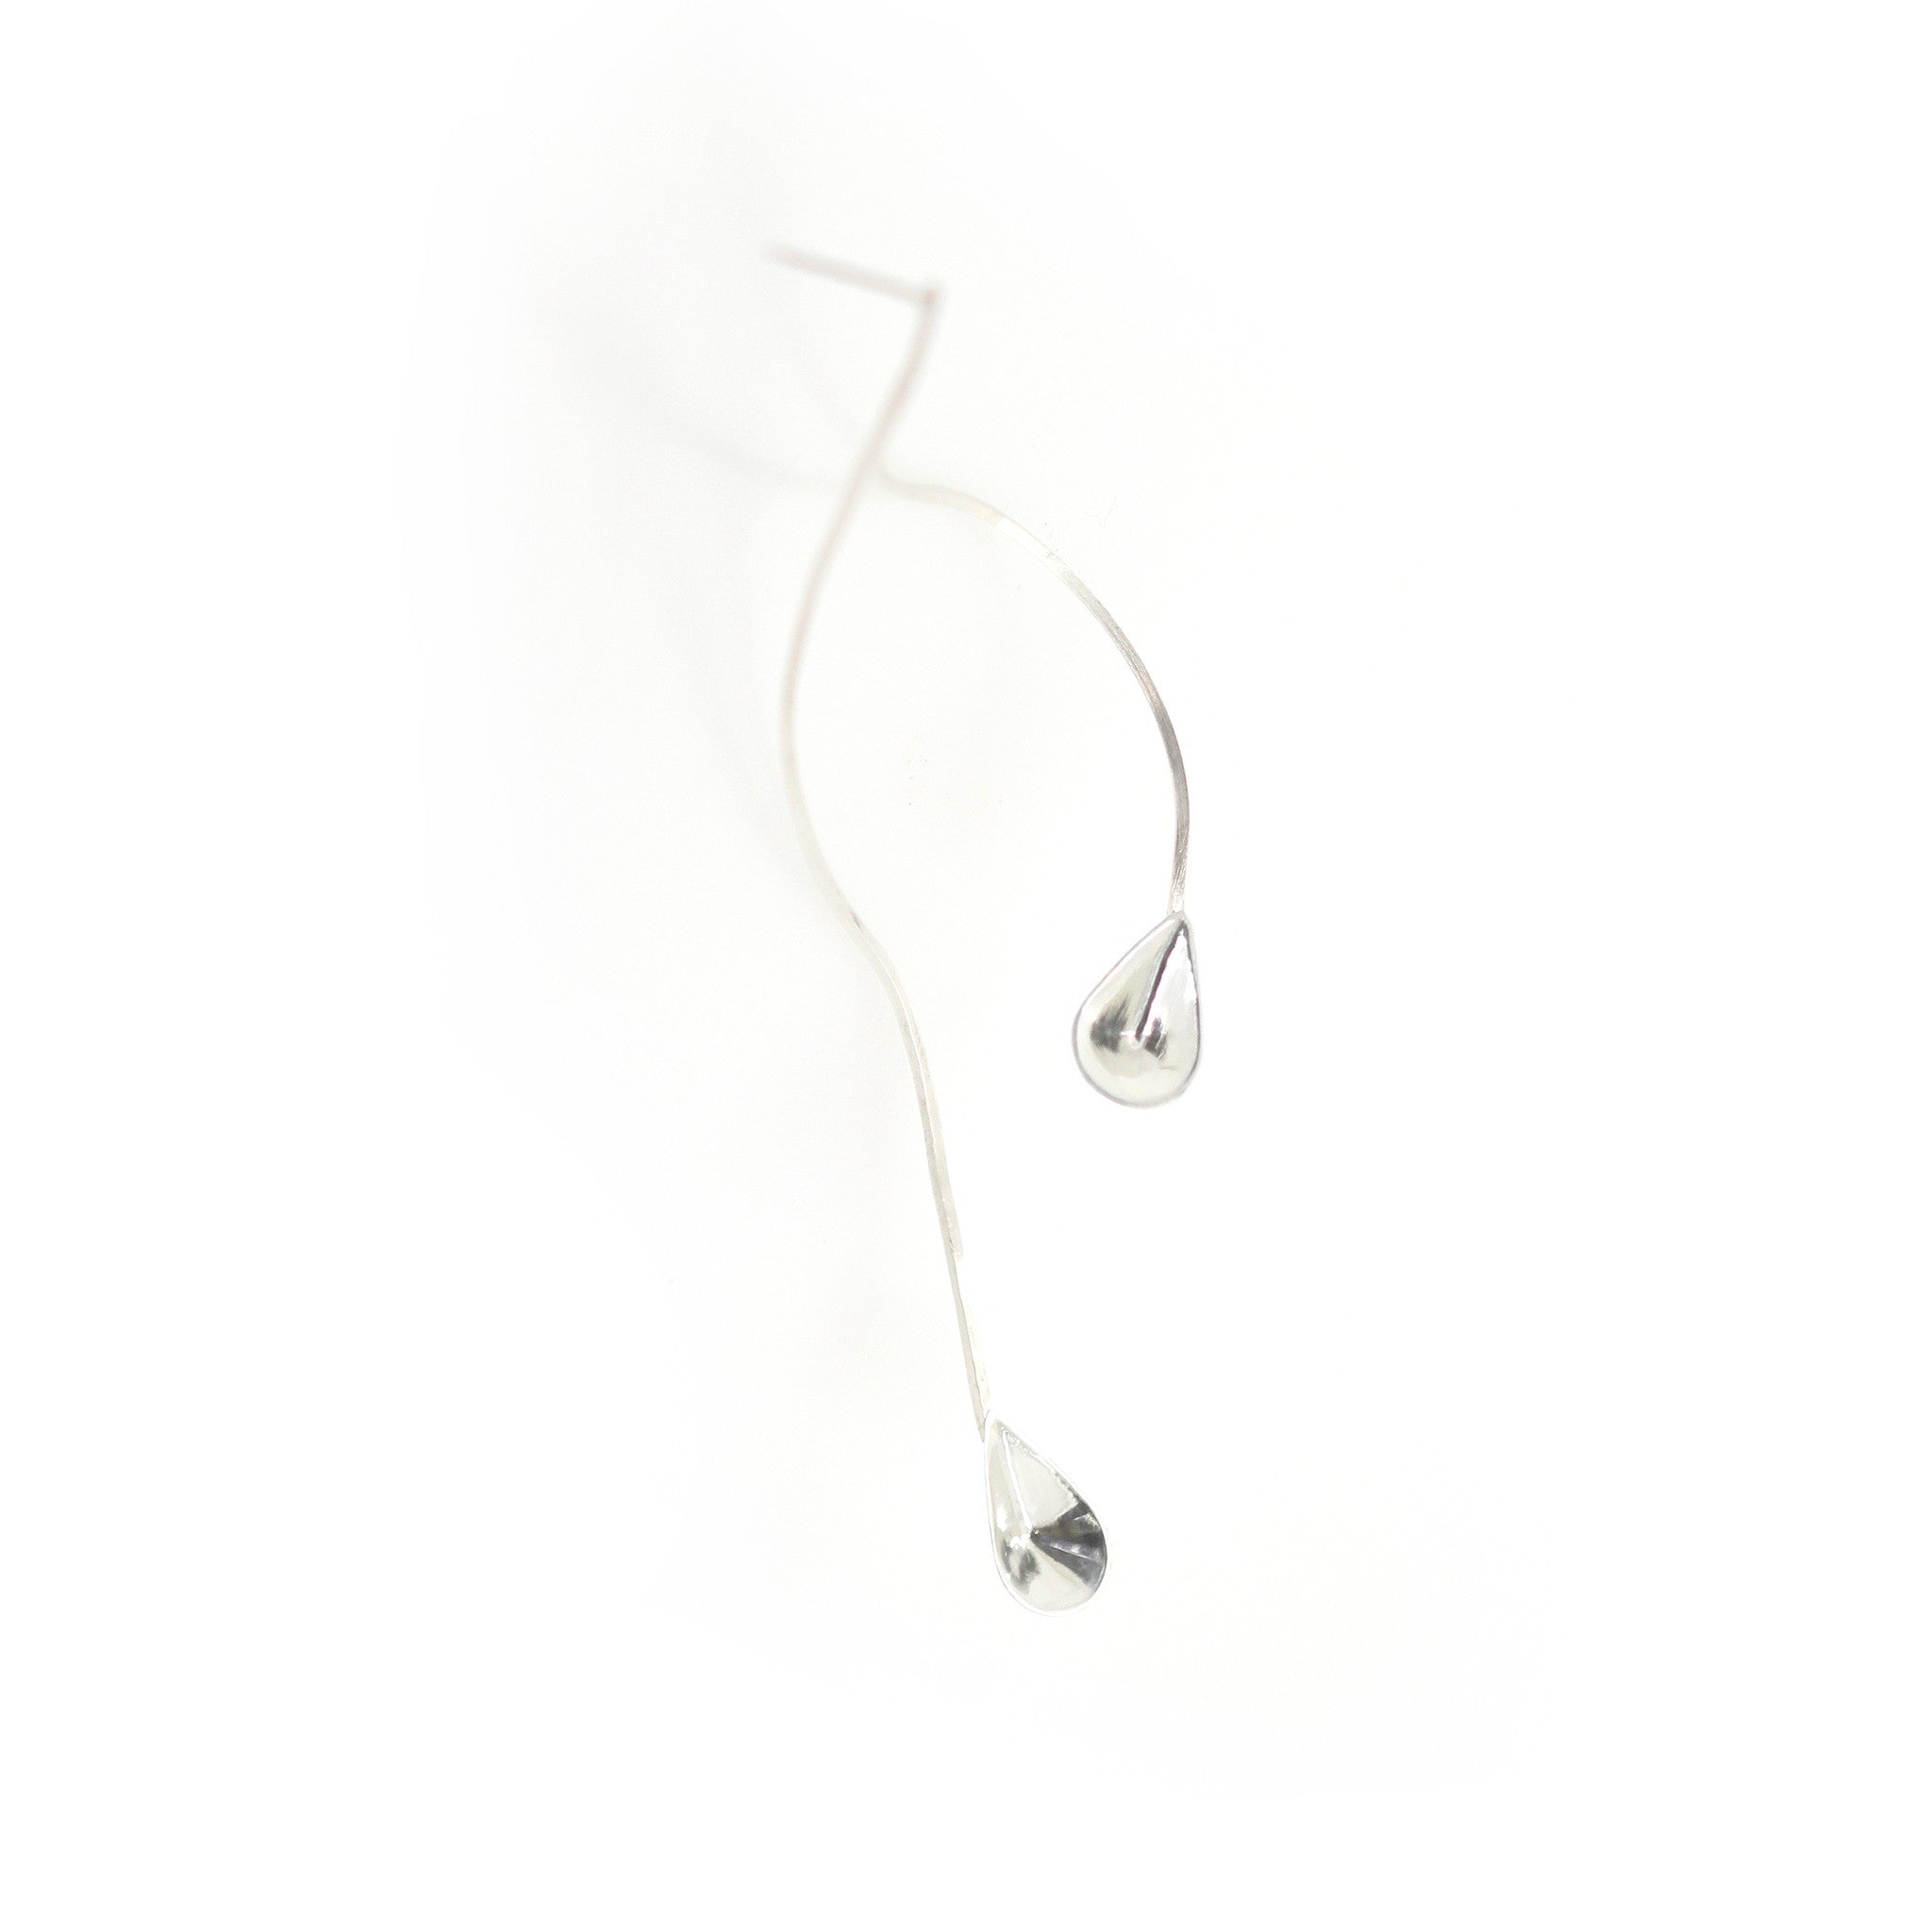 Double Water Drop Long Earring by Lion Studio - Laboratory S